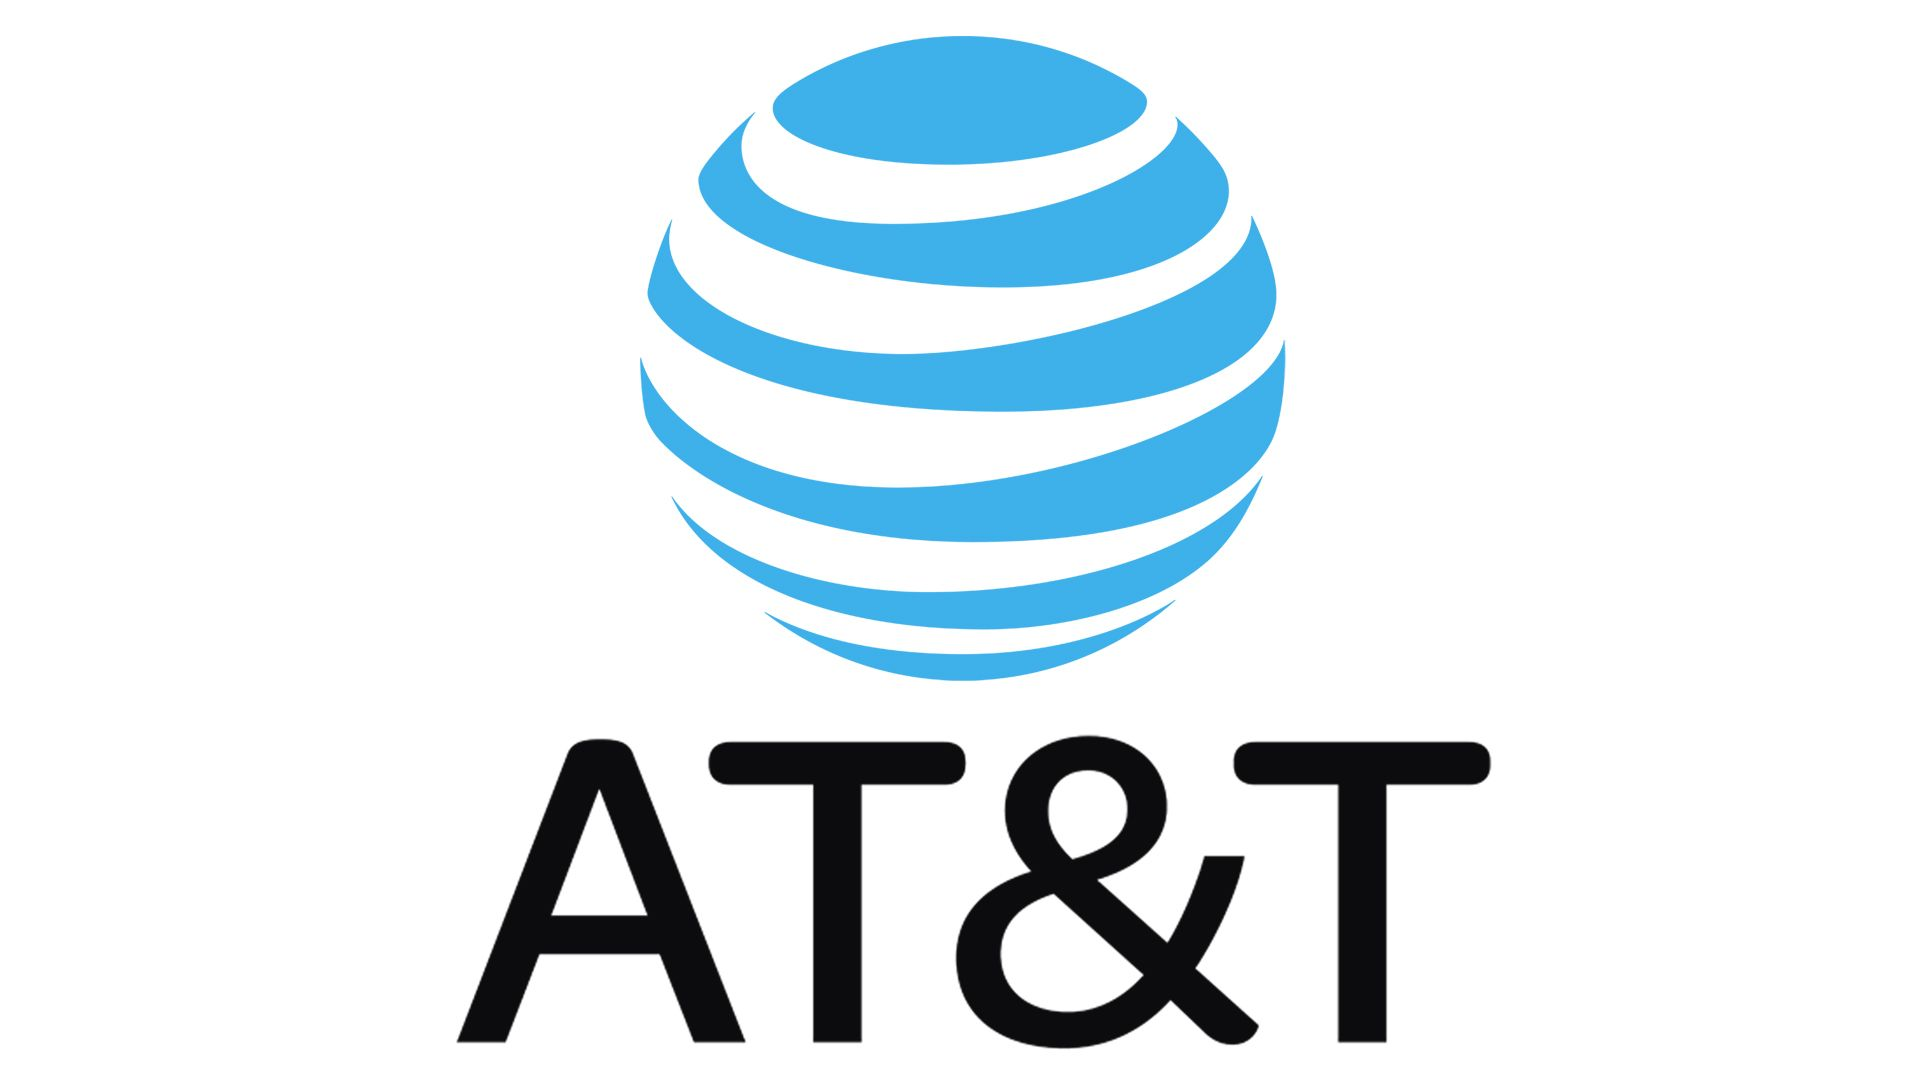 AT&T Logo - AT&T Logo, AT&T Symbol Meaning, History and Evolution